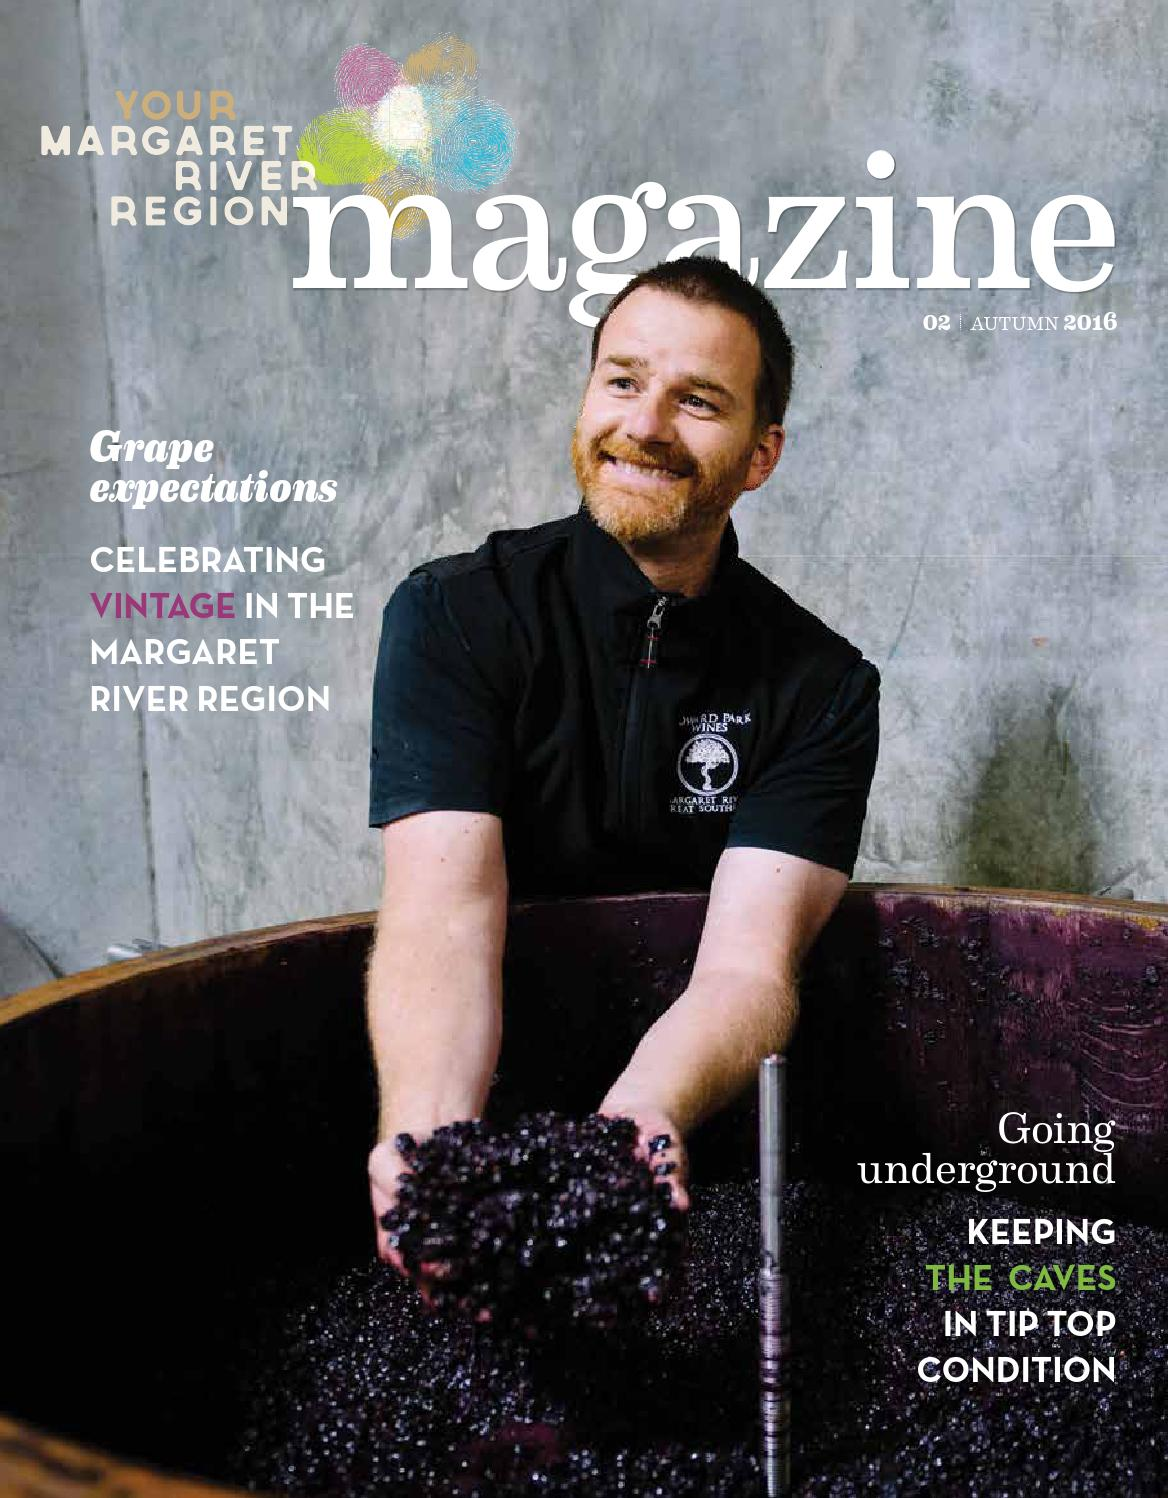 58f3536568 Your Margaret River Region Magazine - Autumn 2016 by Premium Publishers -  issuu